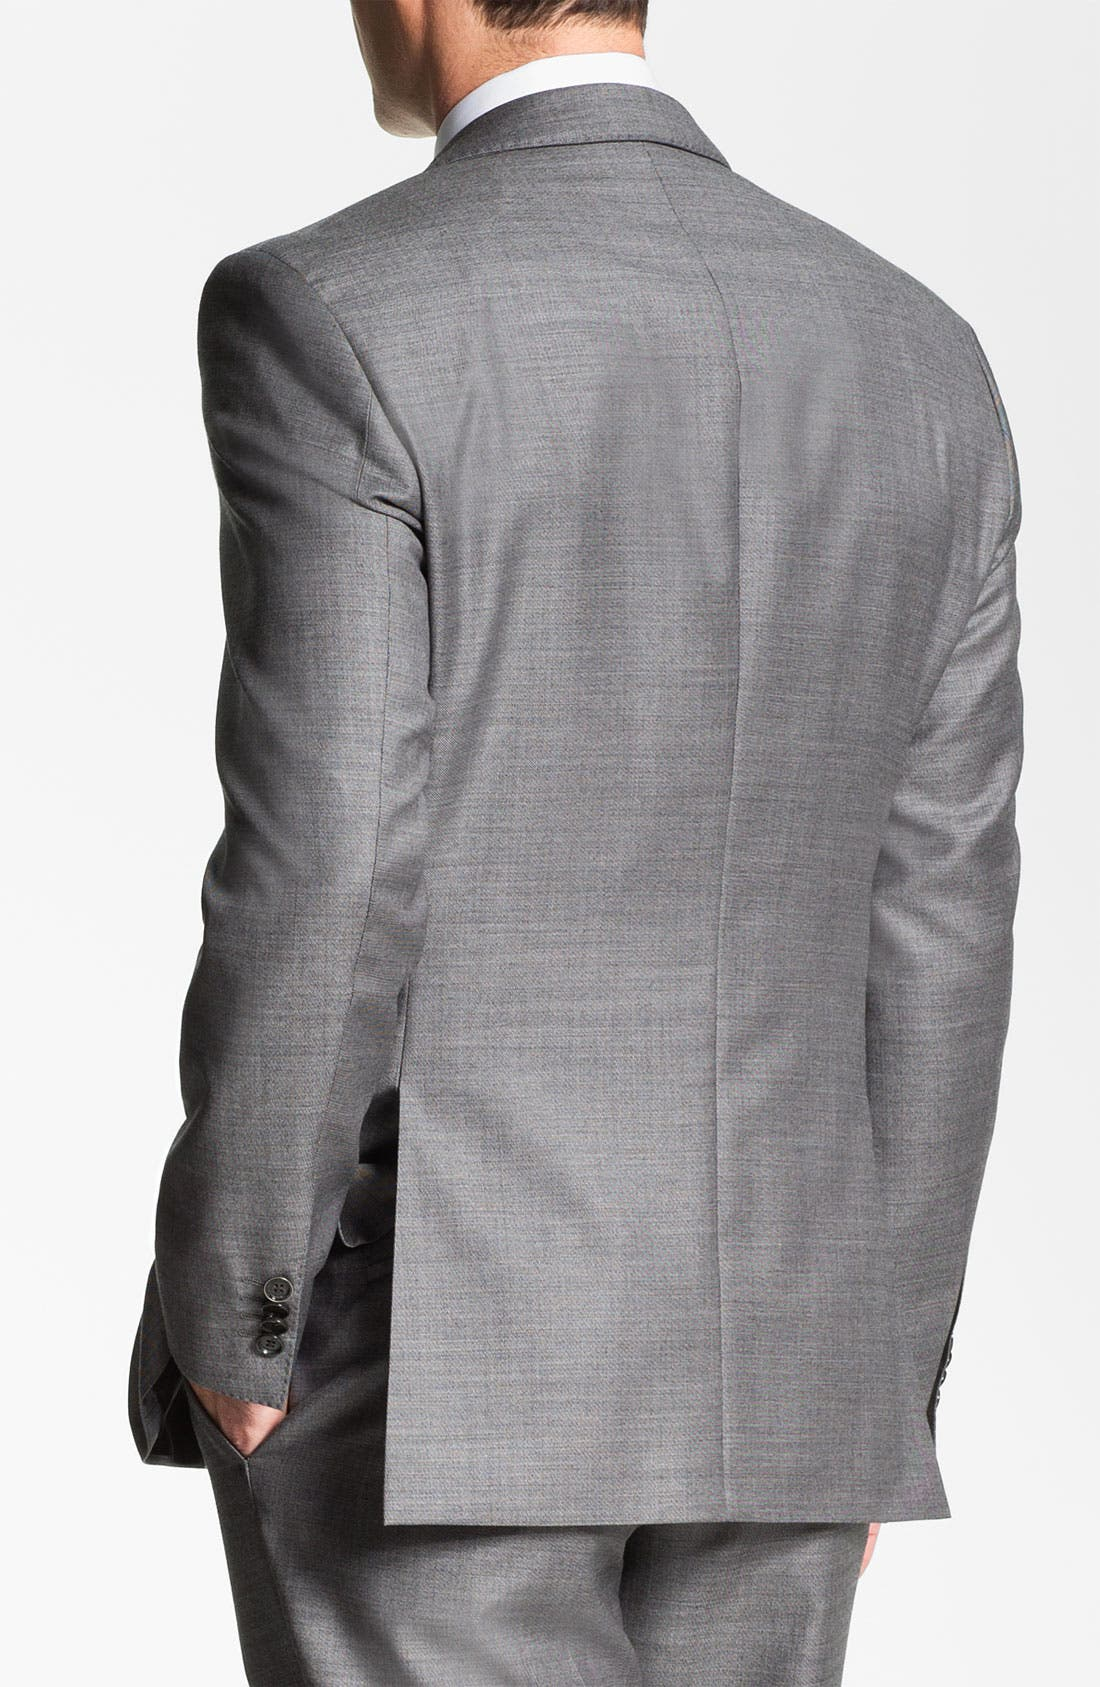 BOSS HUGO BOSS 'James/Sharp' Trim Fit Wool Suit,                             Alternate thumbnail 2, color,                             020